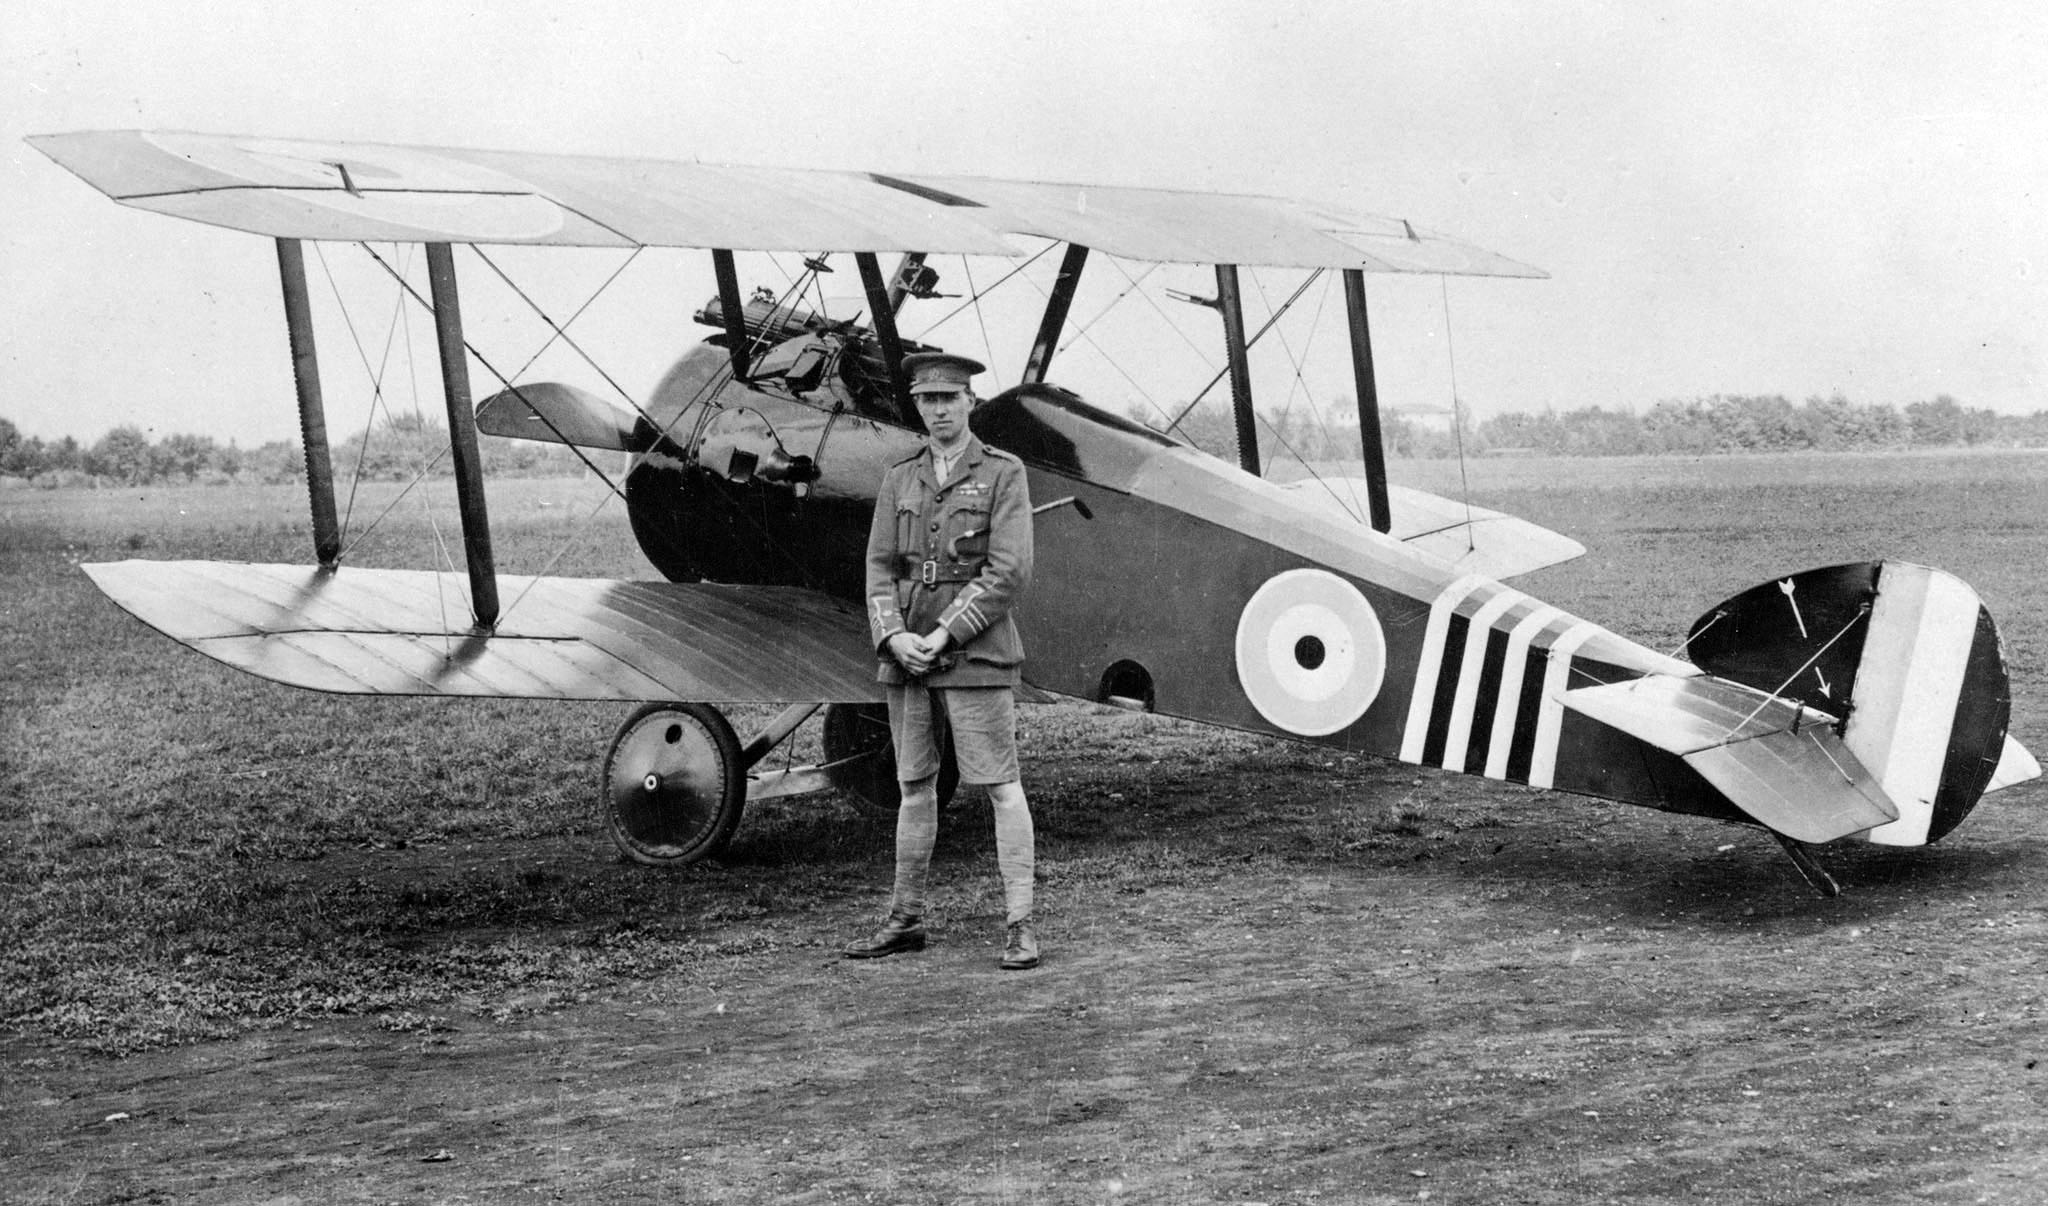 Wing Commander William Barker with his Sopwith Camel, B6313. According to author Wayne Ralph, this aircraft has been declared by British aviation historians to be the most successful fighting aircraft in Royal Air Force history. PHOTO: DND Archives, AH-517